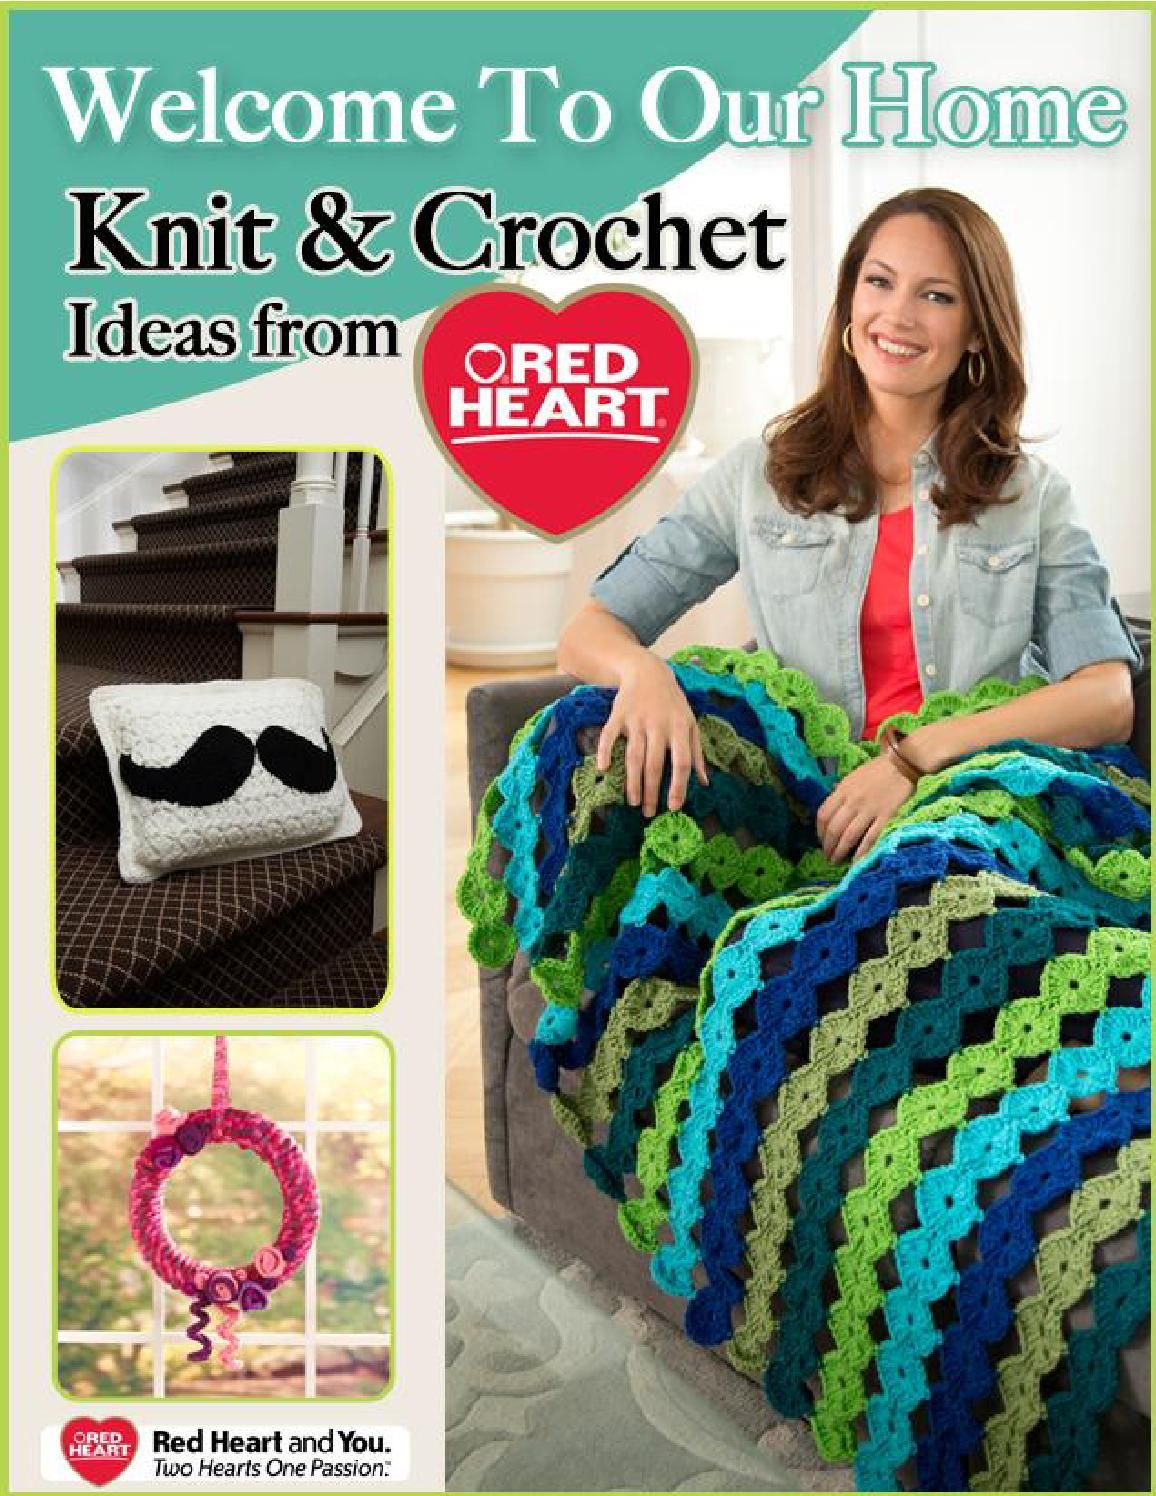 Welcome to our home knit and crochet ideas from red heart free ebook ...